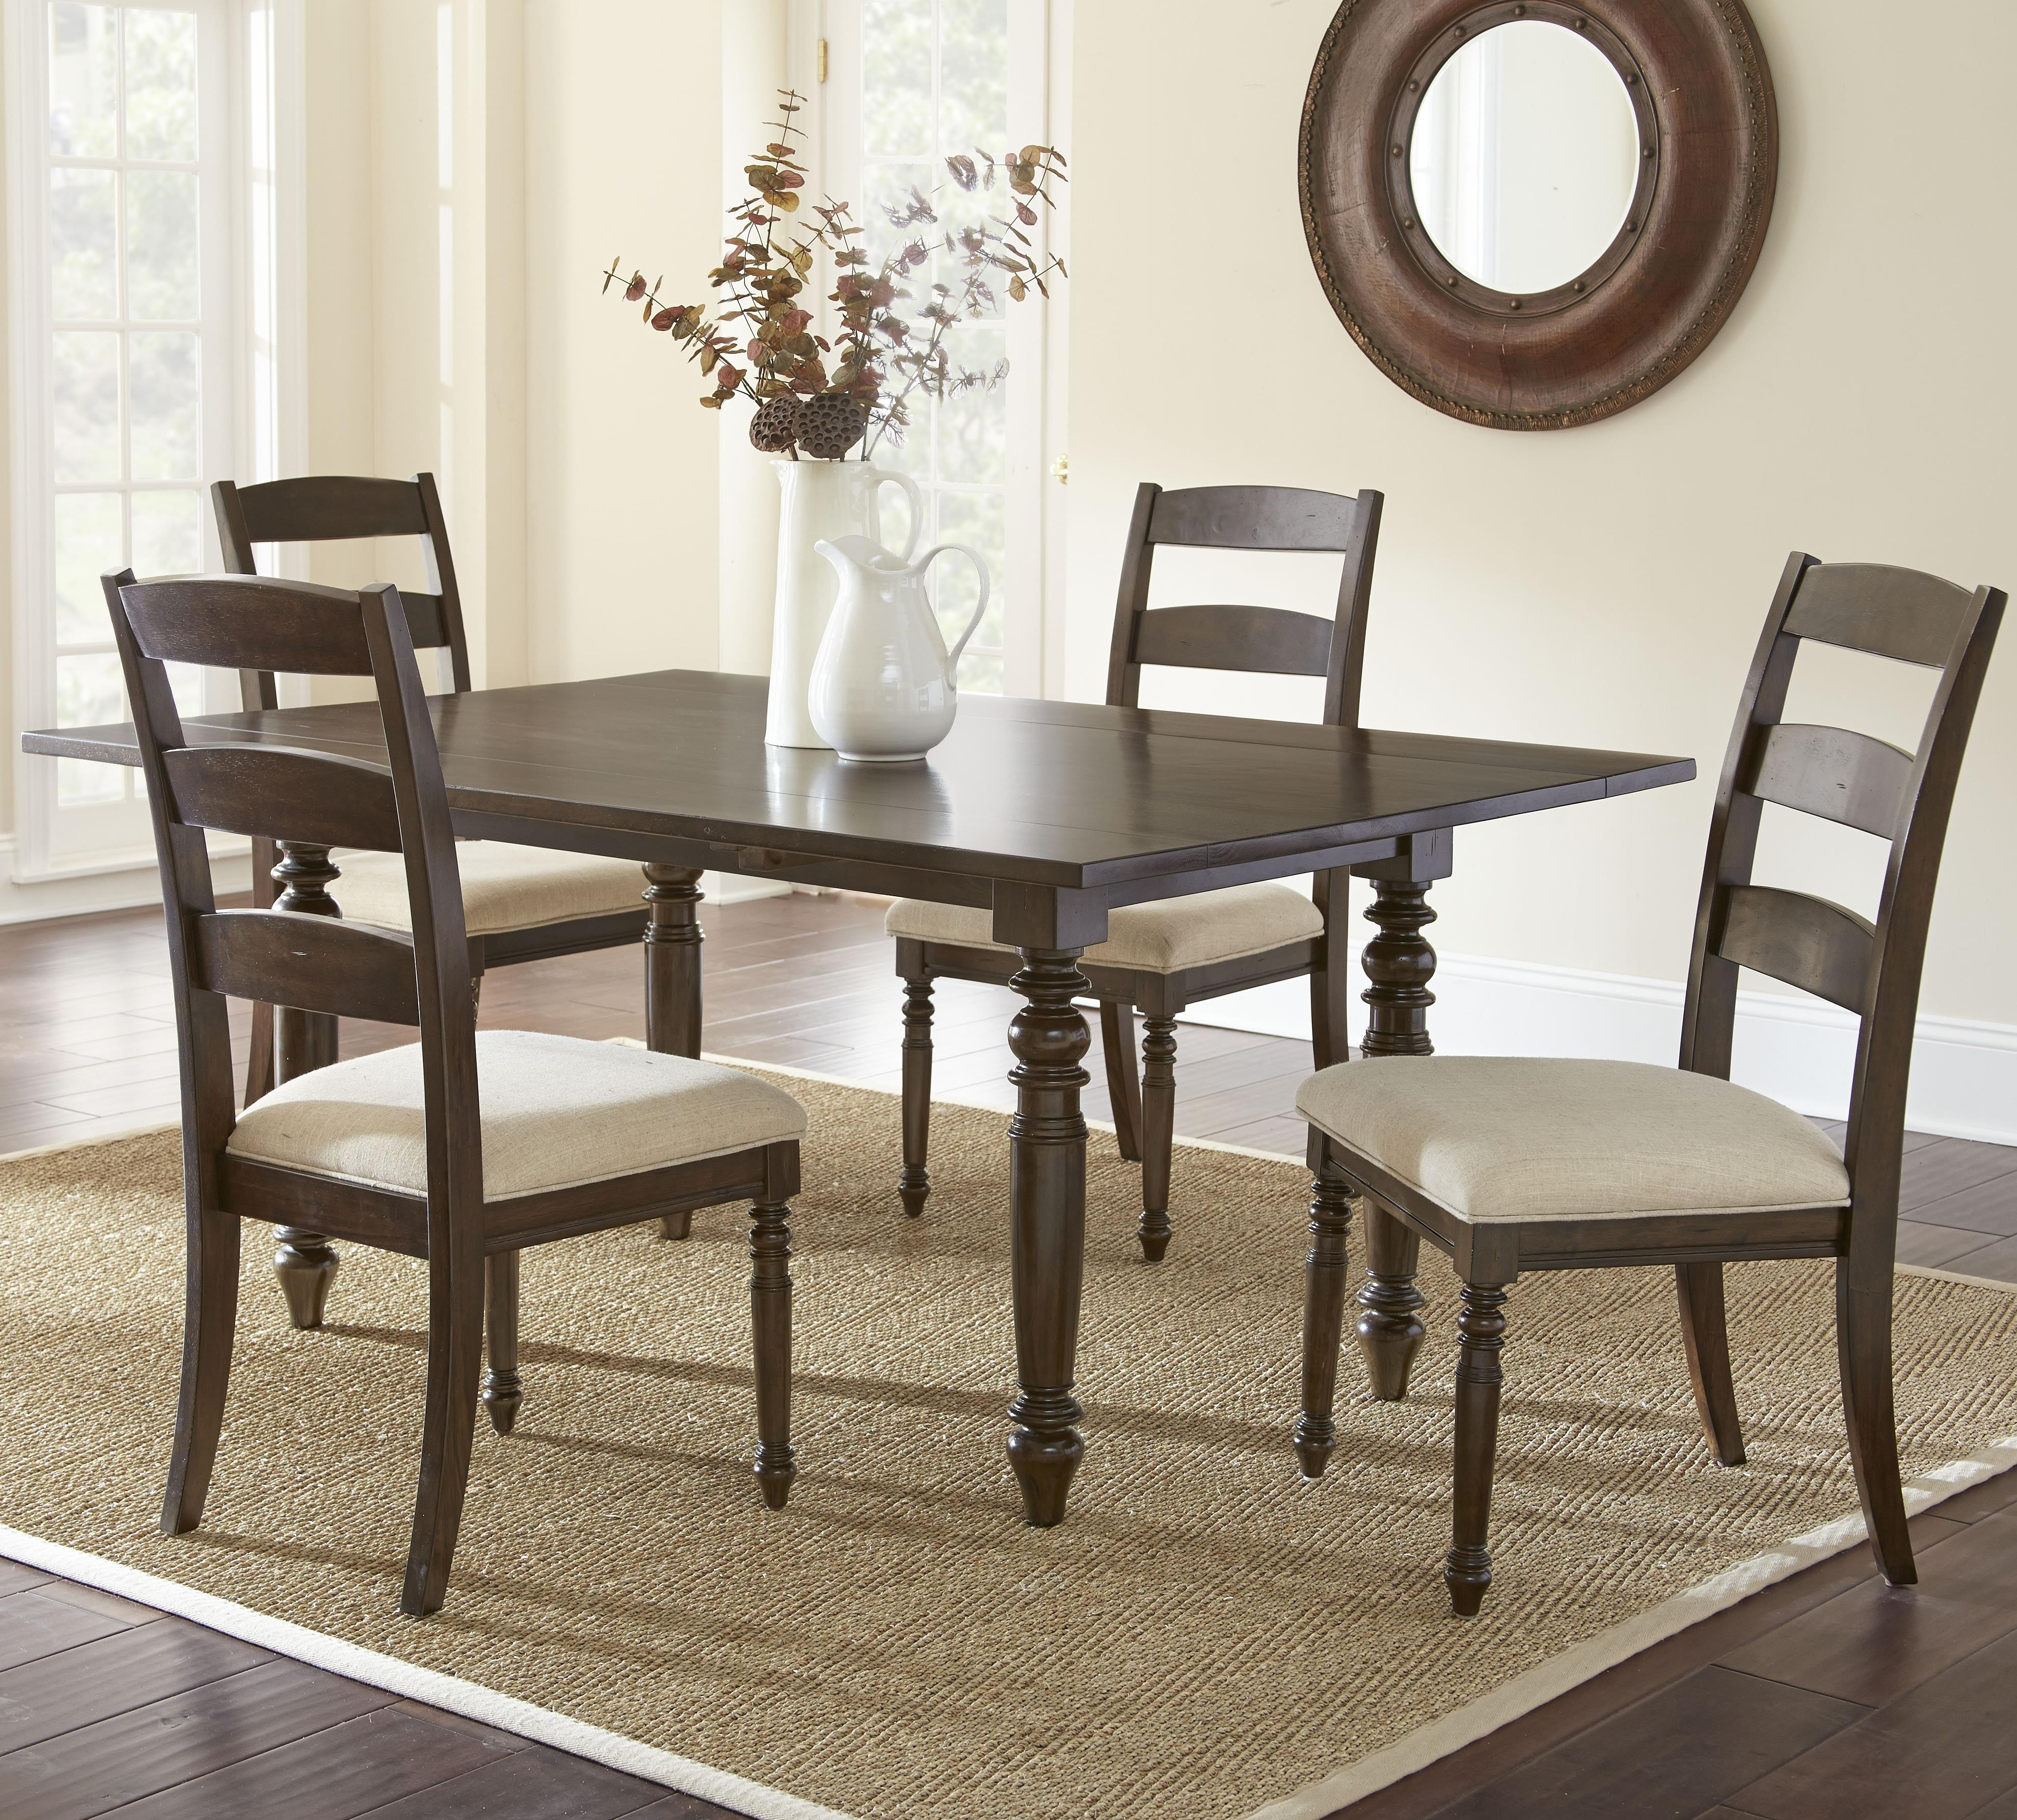 Steve Silver Bexley 5 Piece Dining Set - Item Number: BY550T+4xS